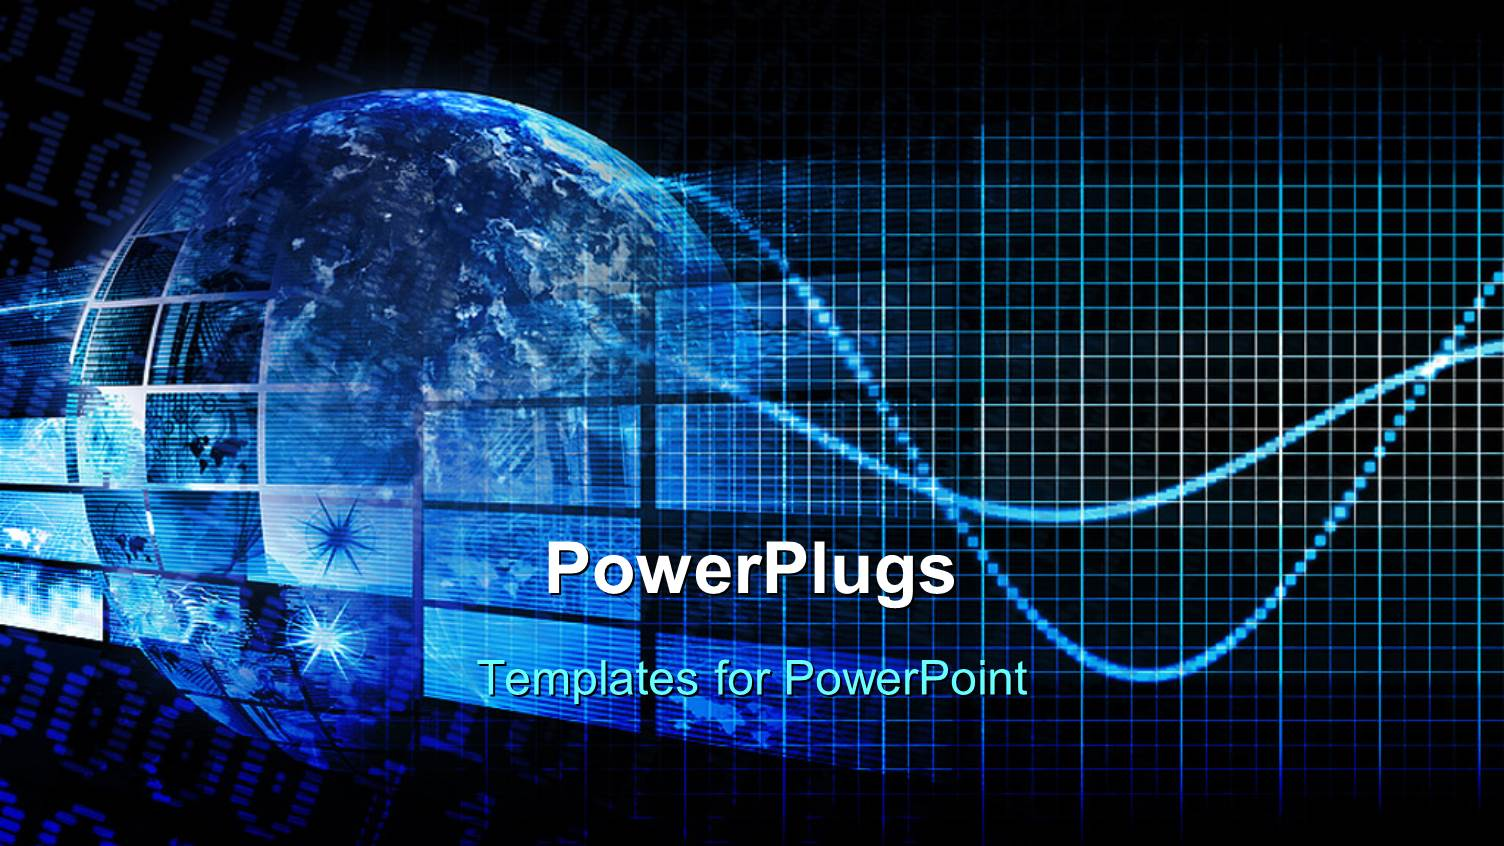 Powerpoint template a blue globe with hi tech images depicting powerpoint template displaying a blue globe with hi tech images depicting technology concept toneelgroepblik Images